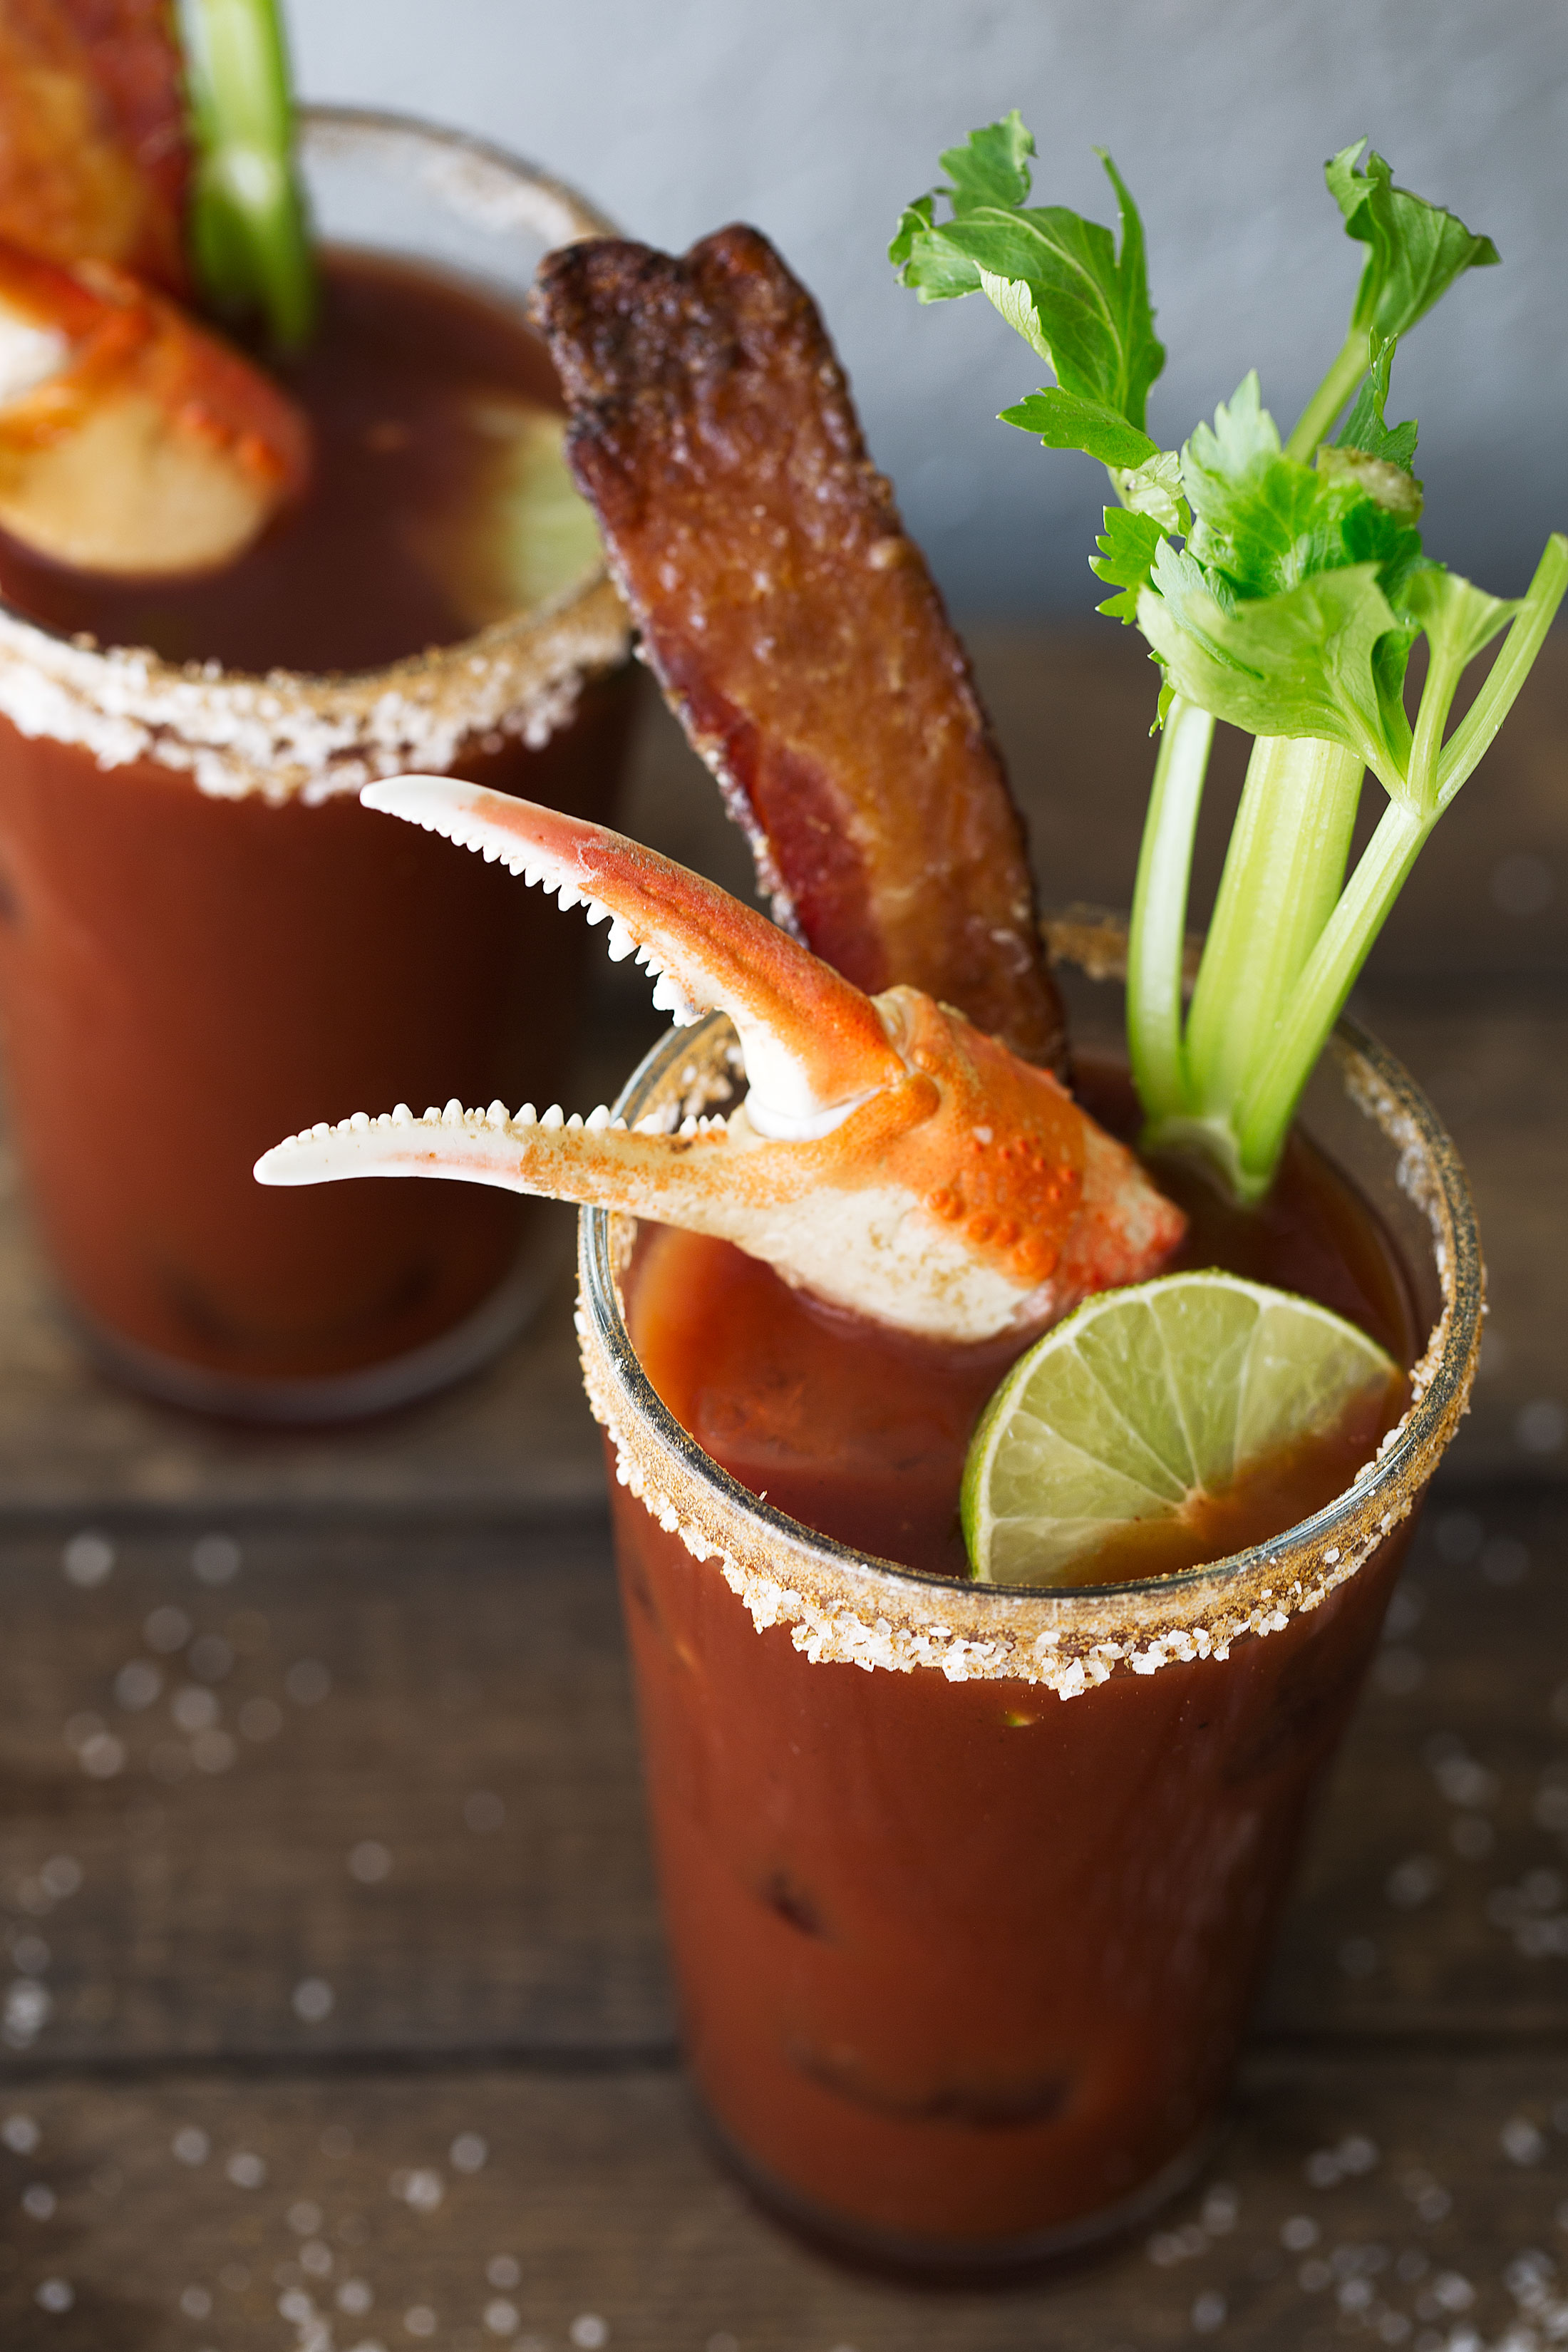 Loaded old bay bloody mary with candied bacon closeup